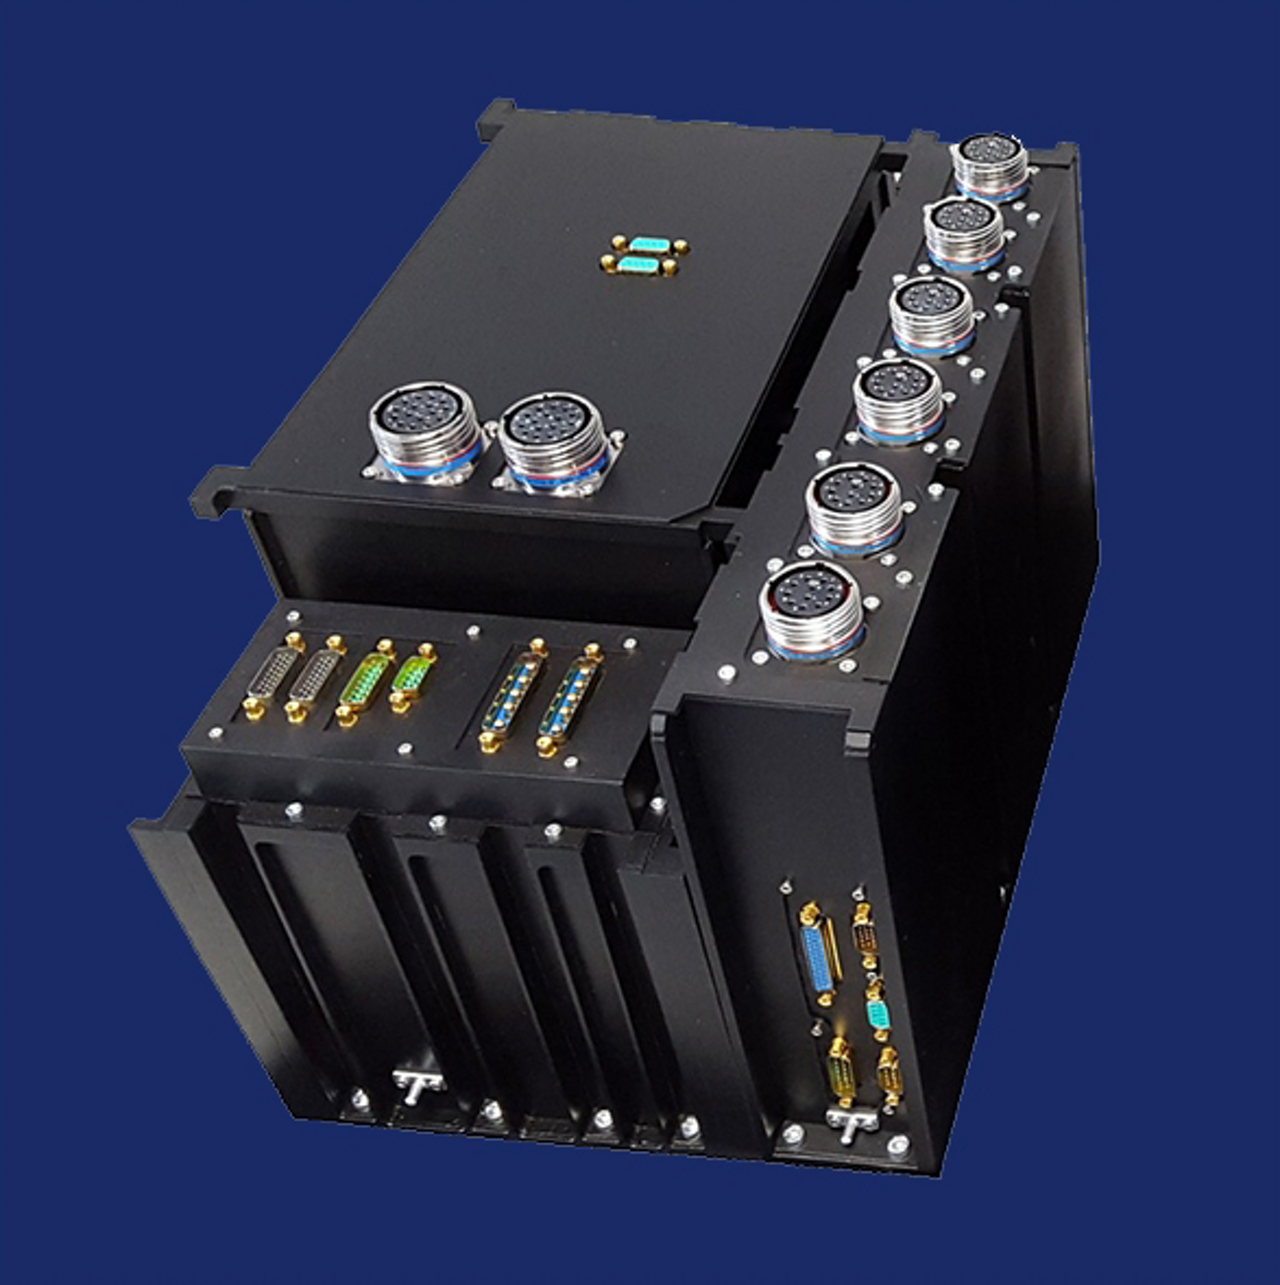 A digital rendering of Airbus' Elektro power processing unit (PPU) for hall effect thrusters.